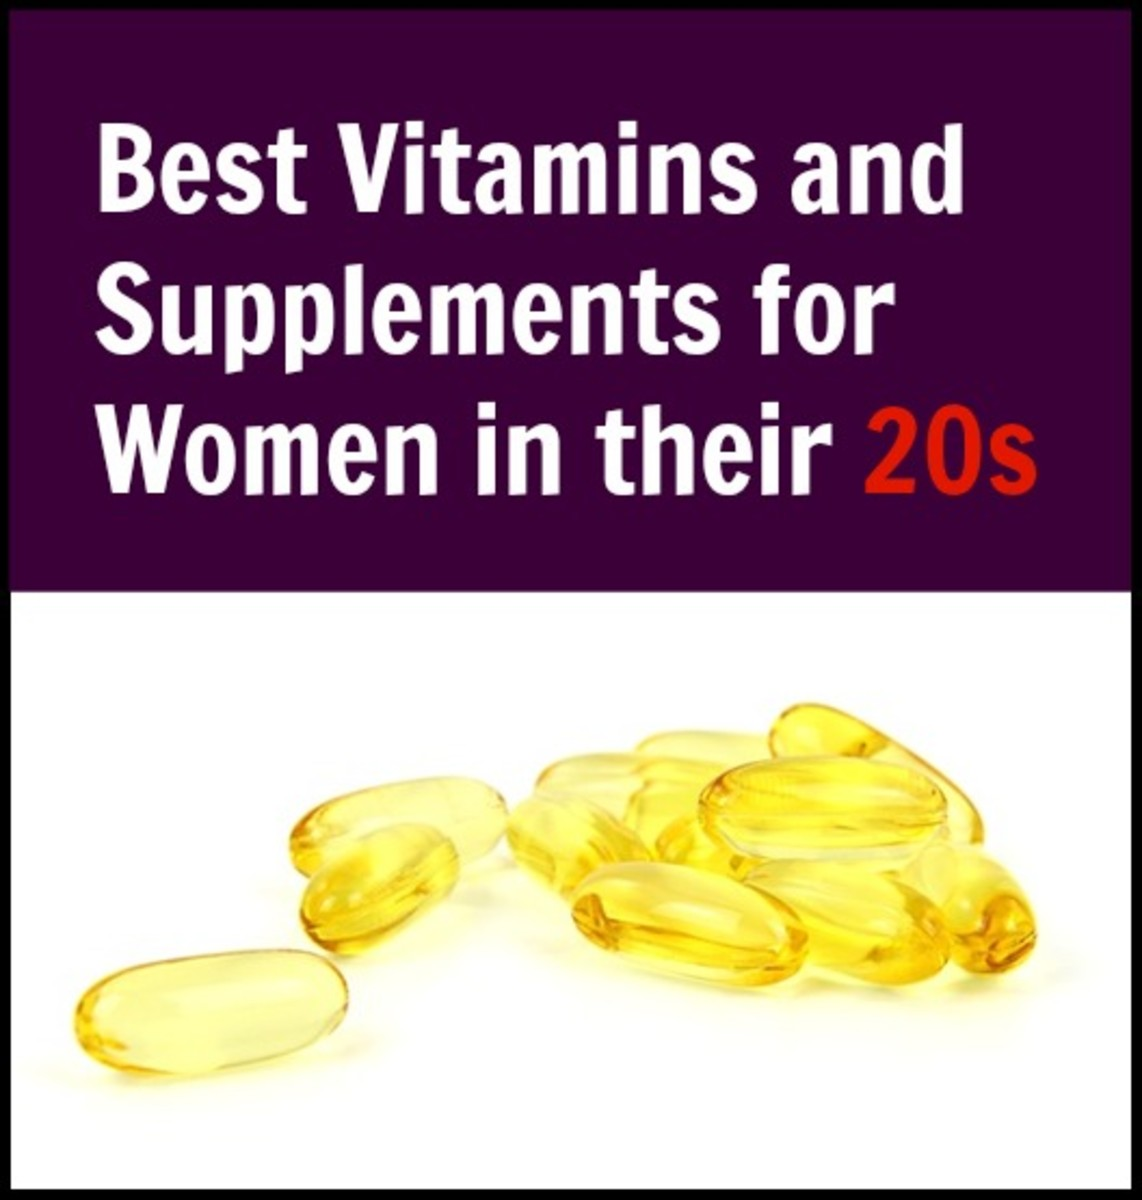 best-vitamins-and-supplements-for-women-in-their-20s